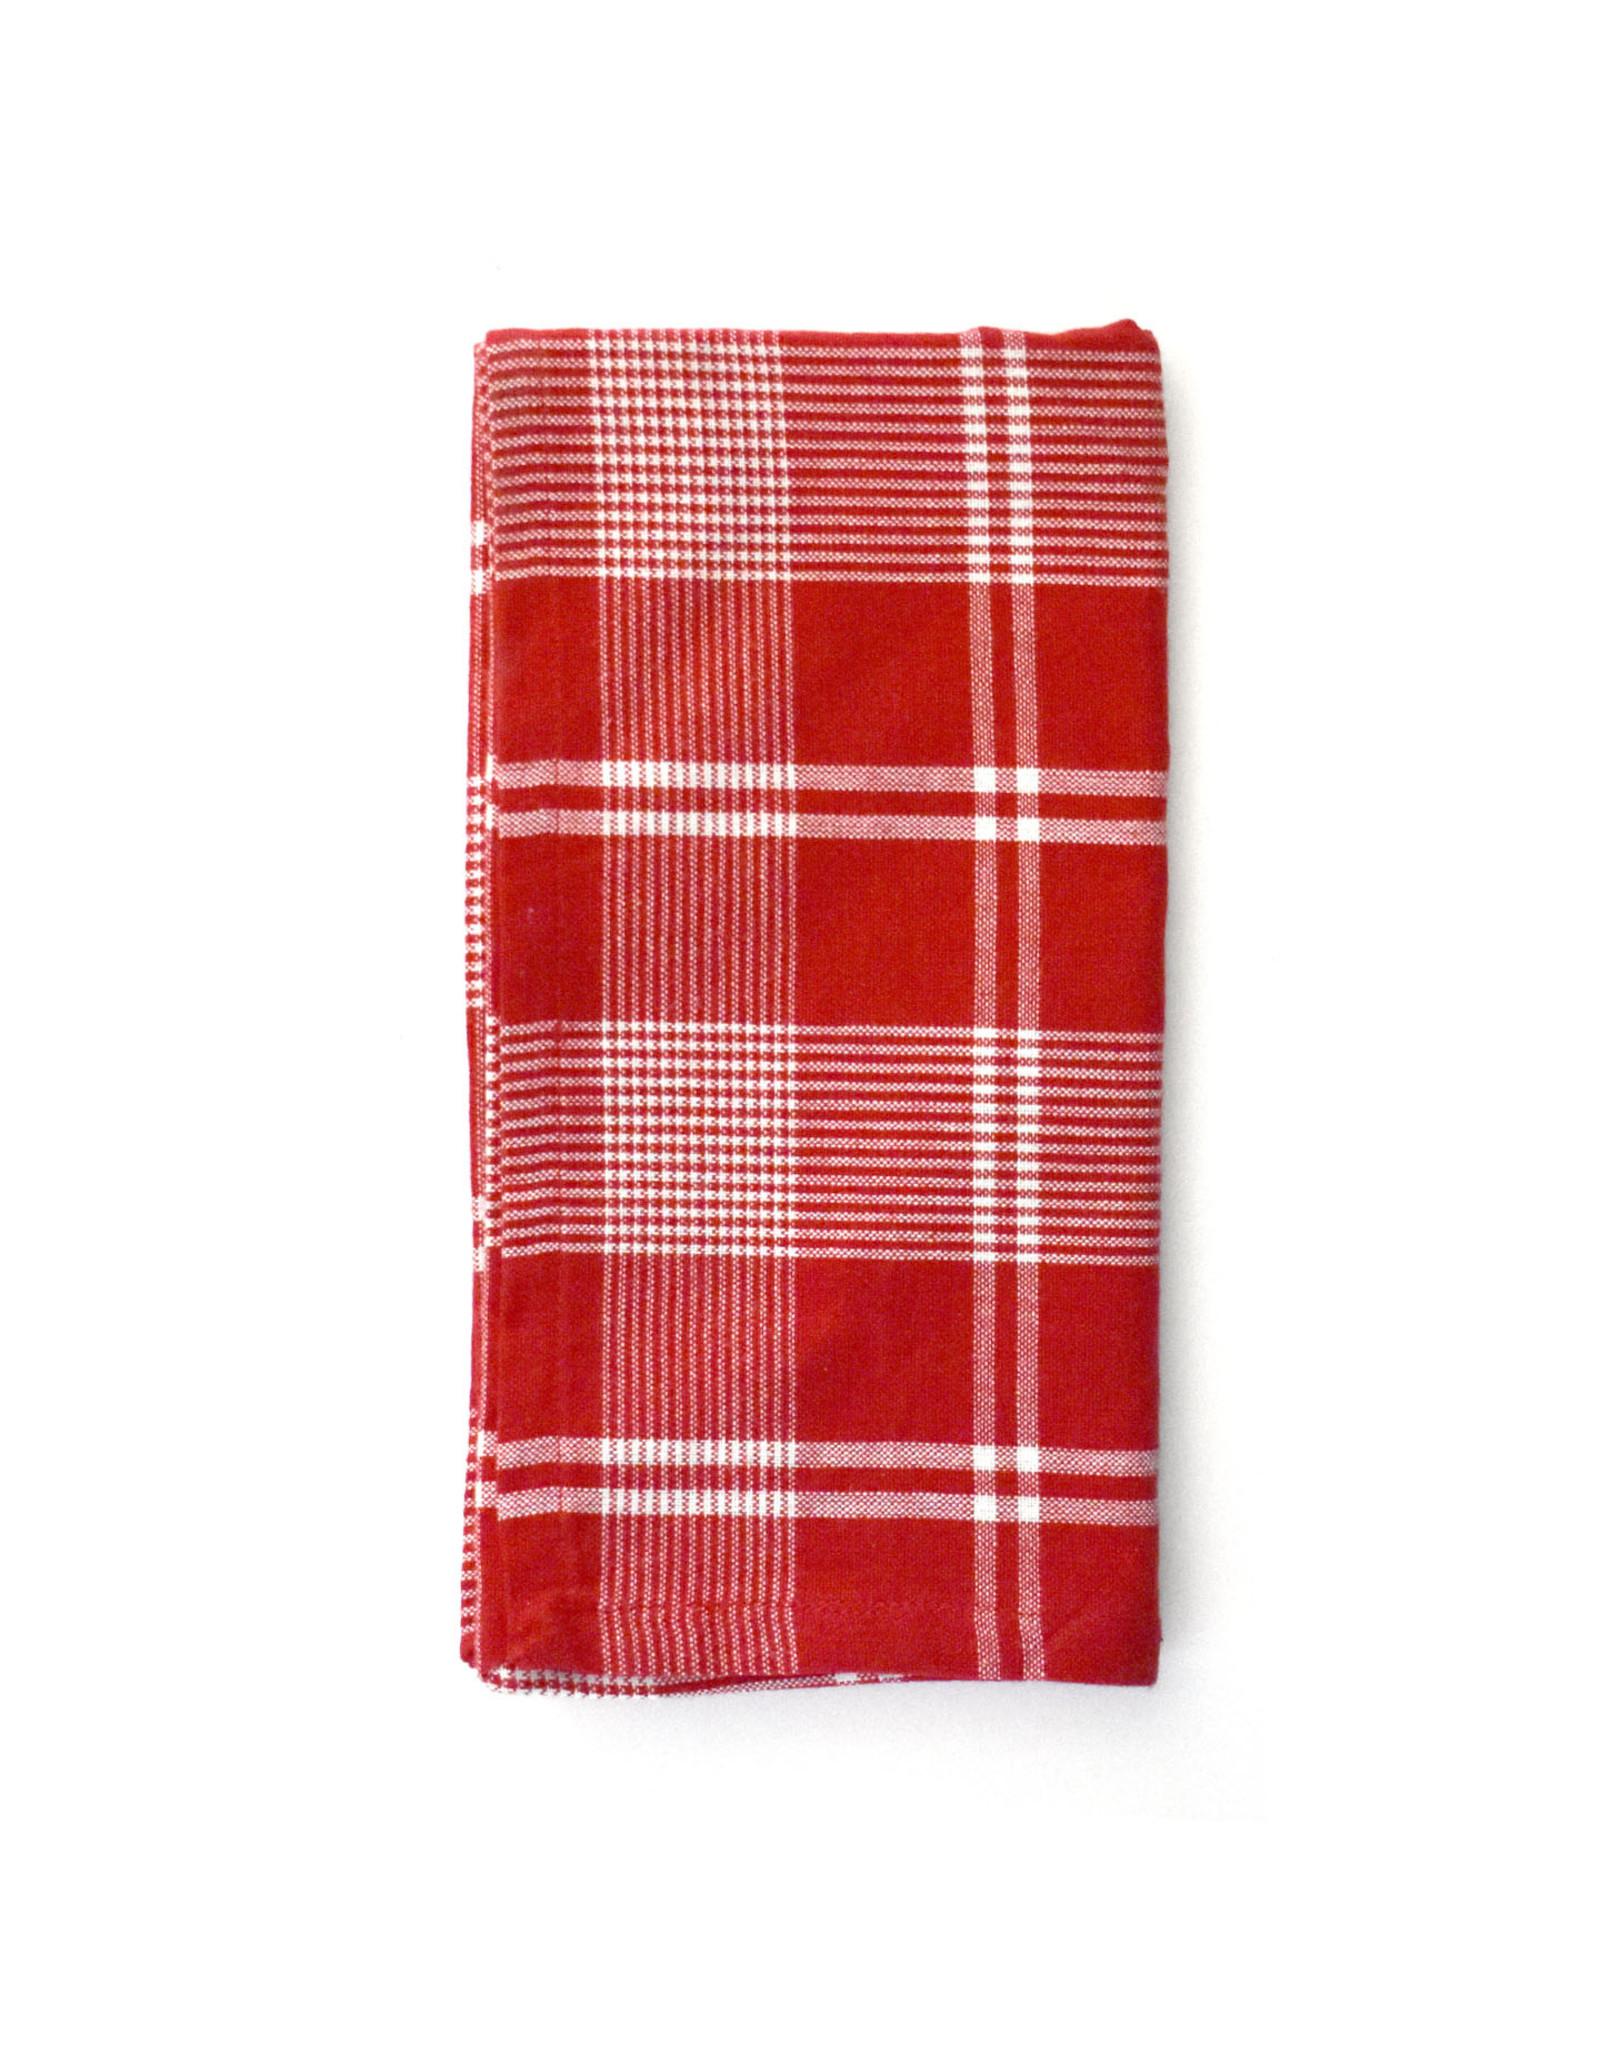 Sturbridge Checker Napkin